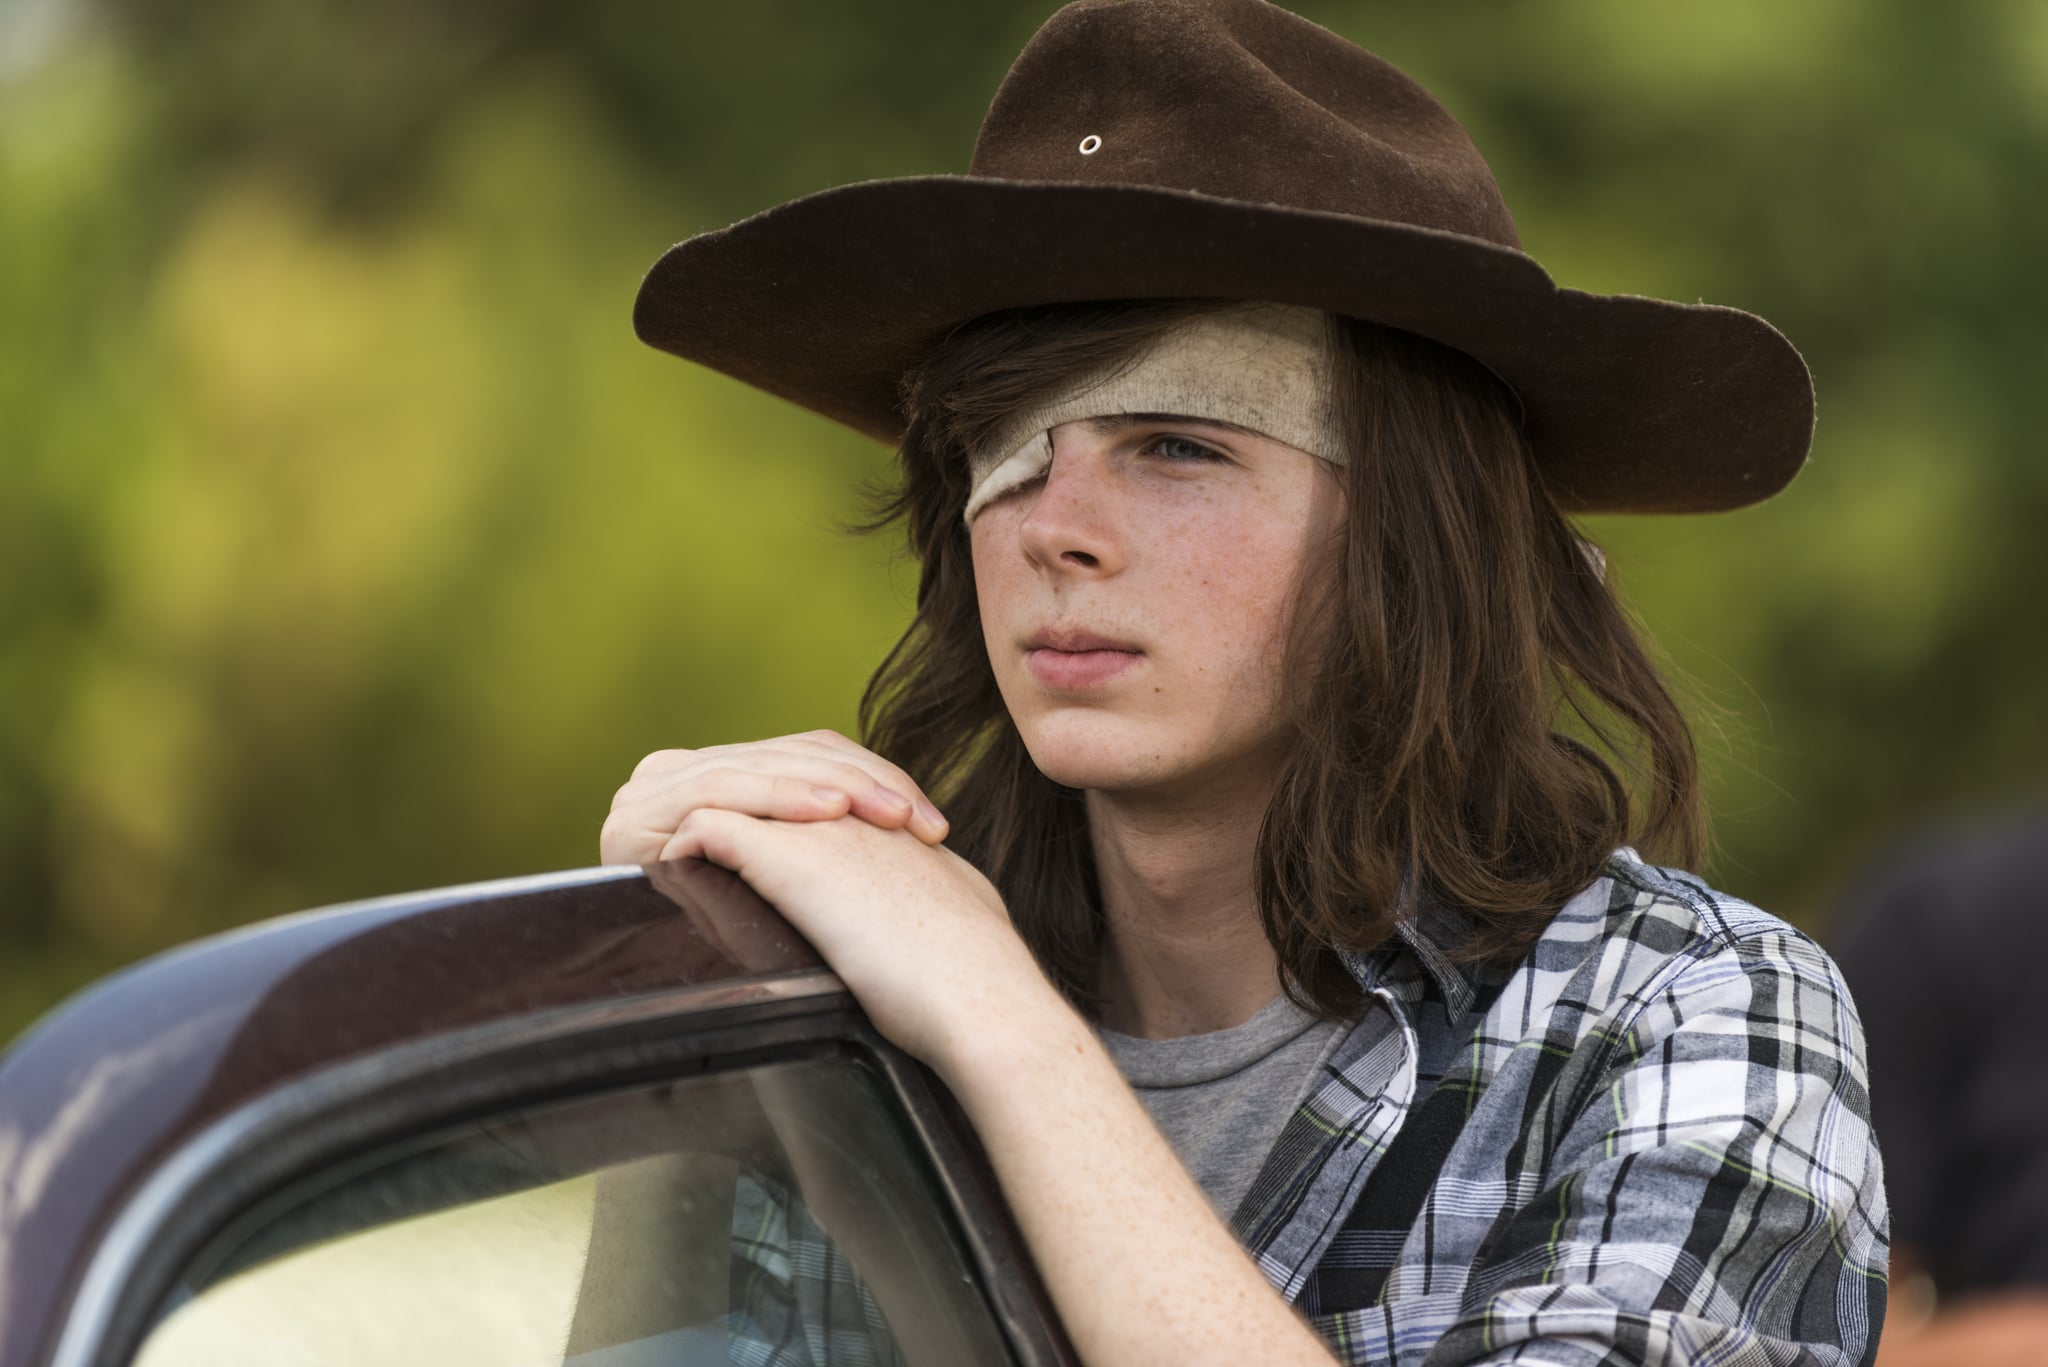 Does Carl Have a Girlfriend on The Walking Dead? | POPSUGAR